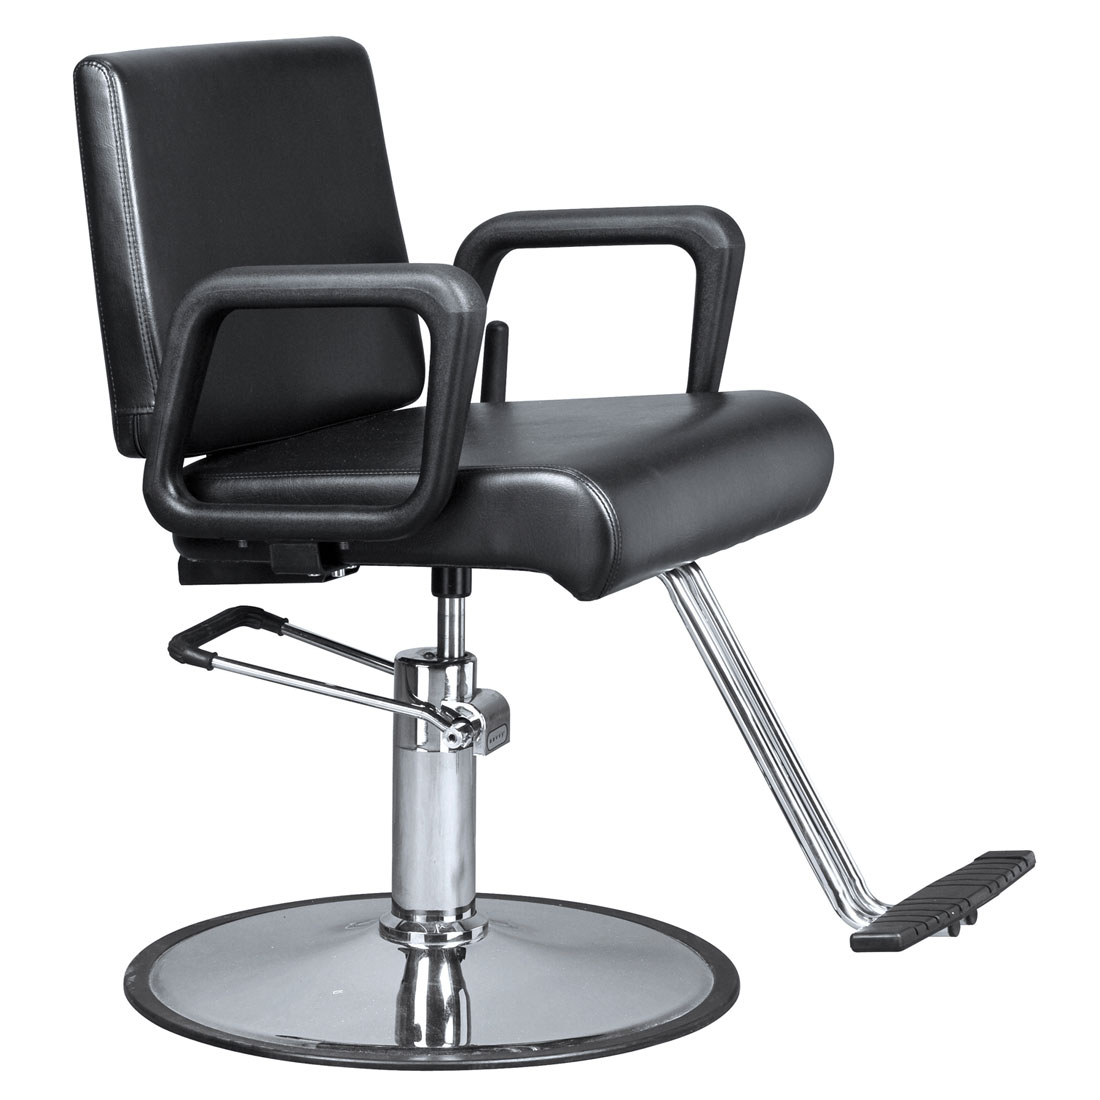 Hydraulic Styling Chair Judy All Purpose